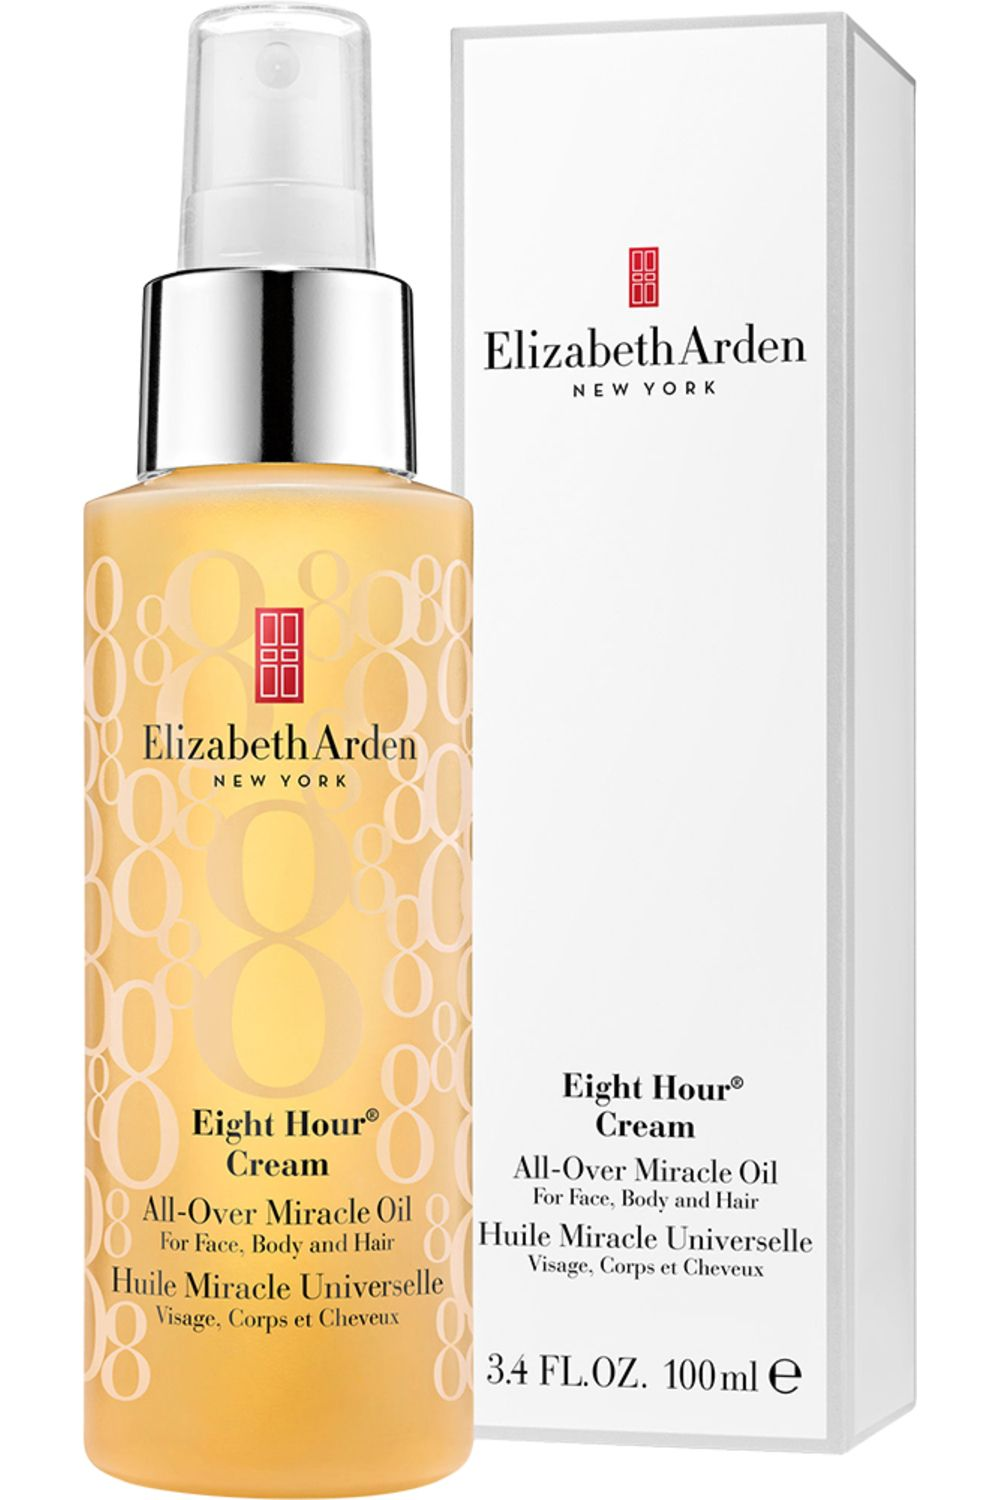 Blissim : Elizabeth Arden - Huile Miracle Universelle Eight Hour® Cream - Huile Miracle Universelle Eight Hour® Cream